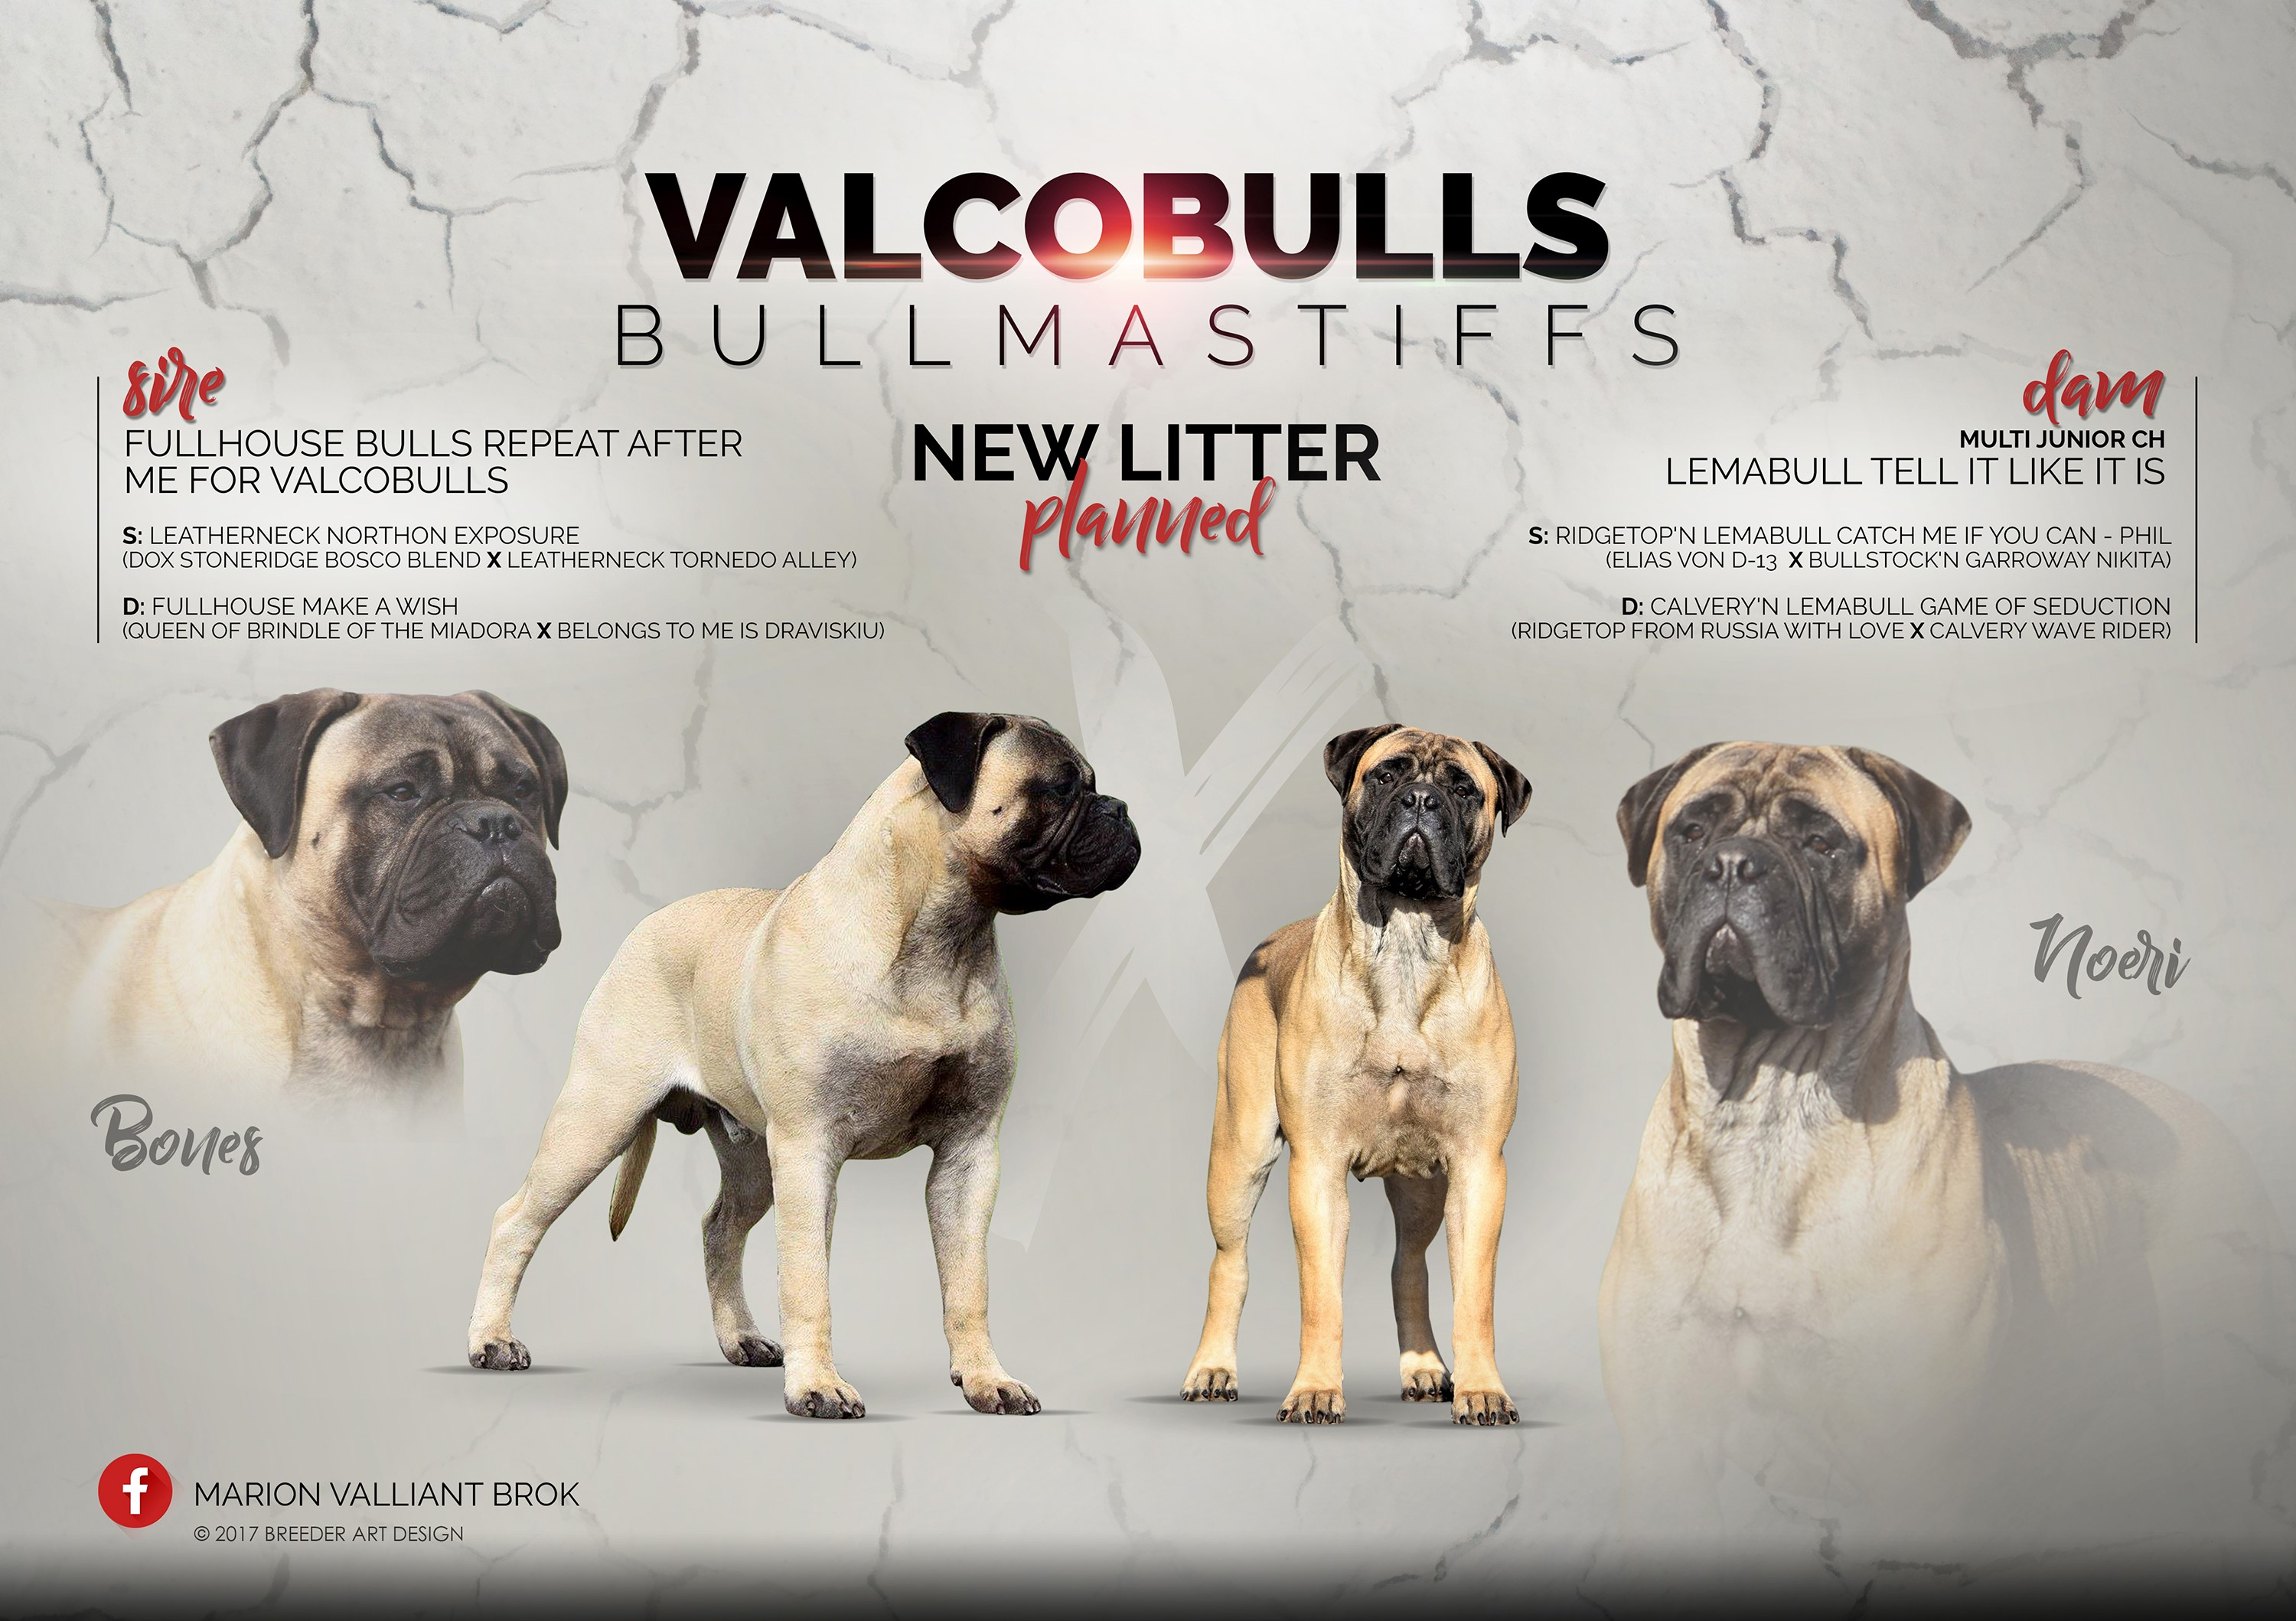 Fullhouse Bulls Repeat after me for Valcobulls x Lemabull tell iT like iT is bullmastiff puppy planning